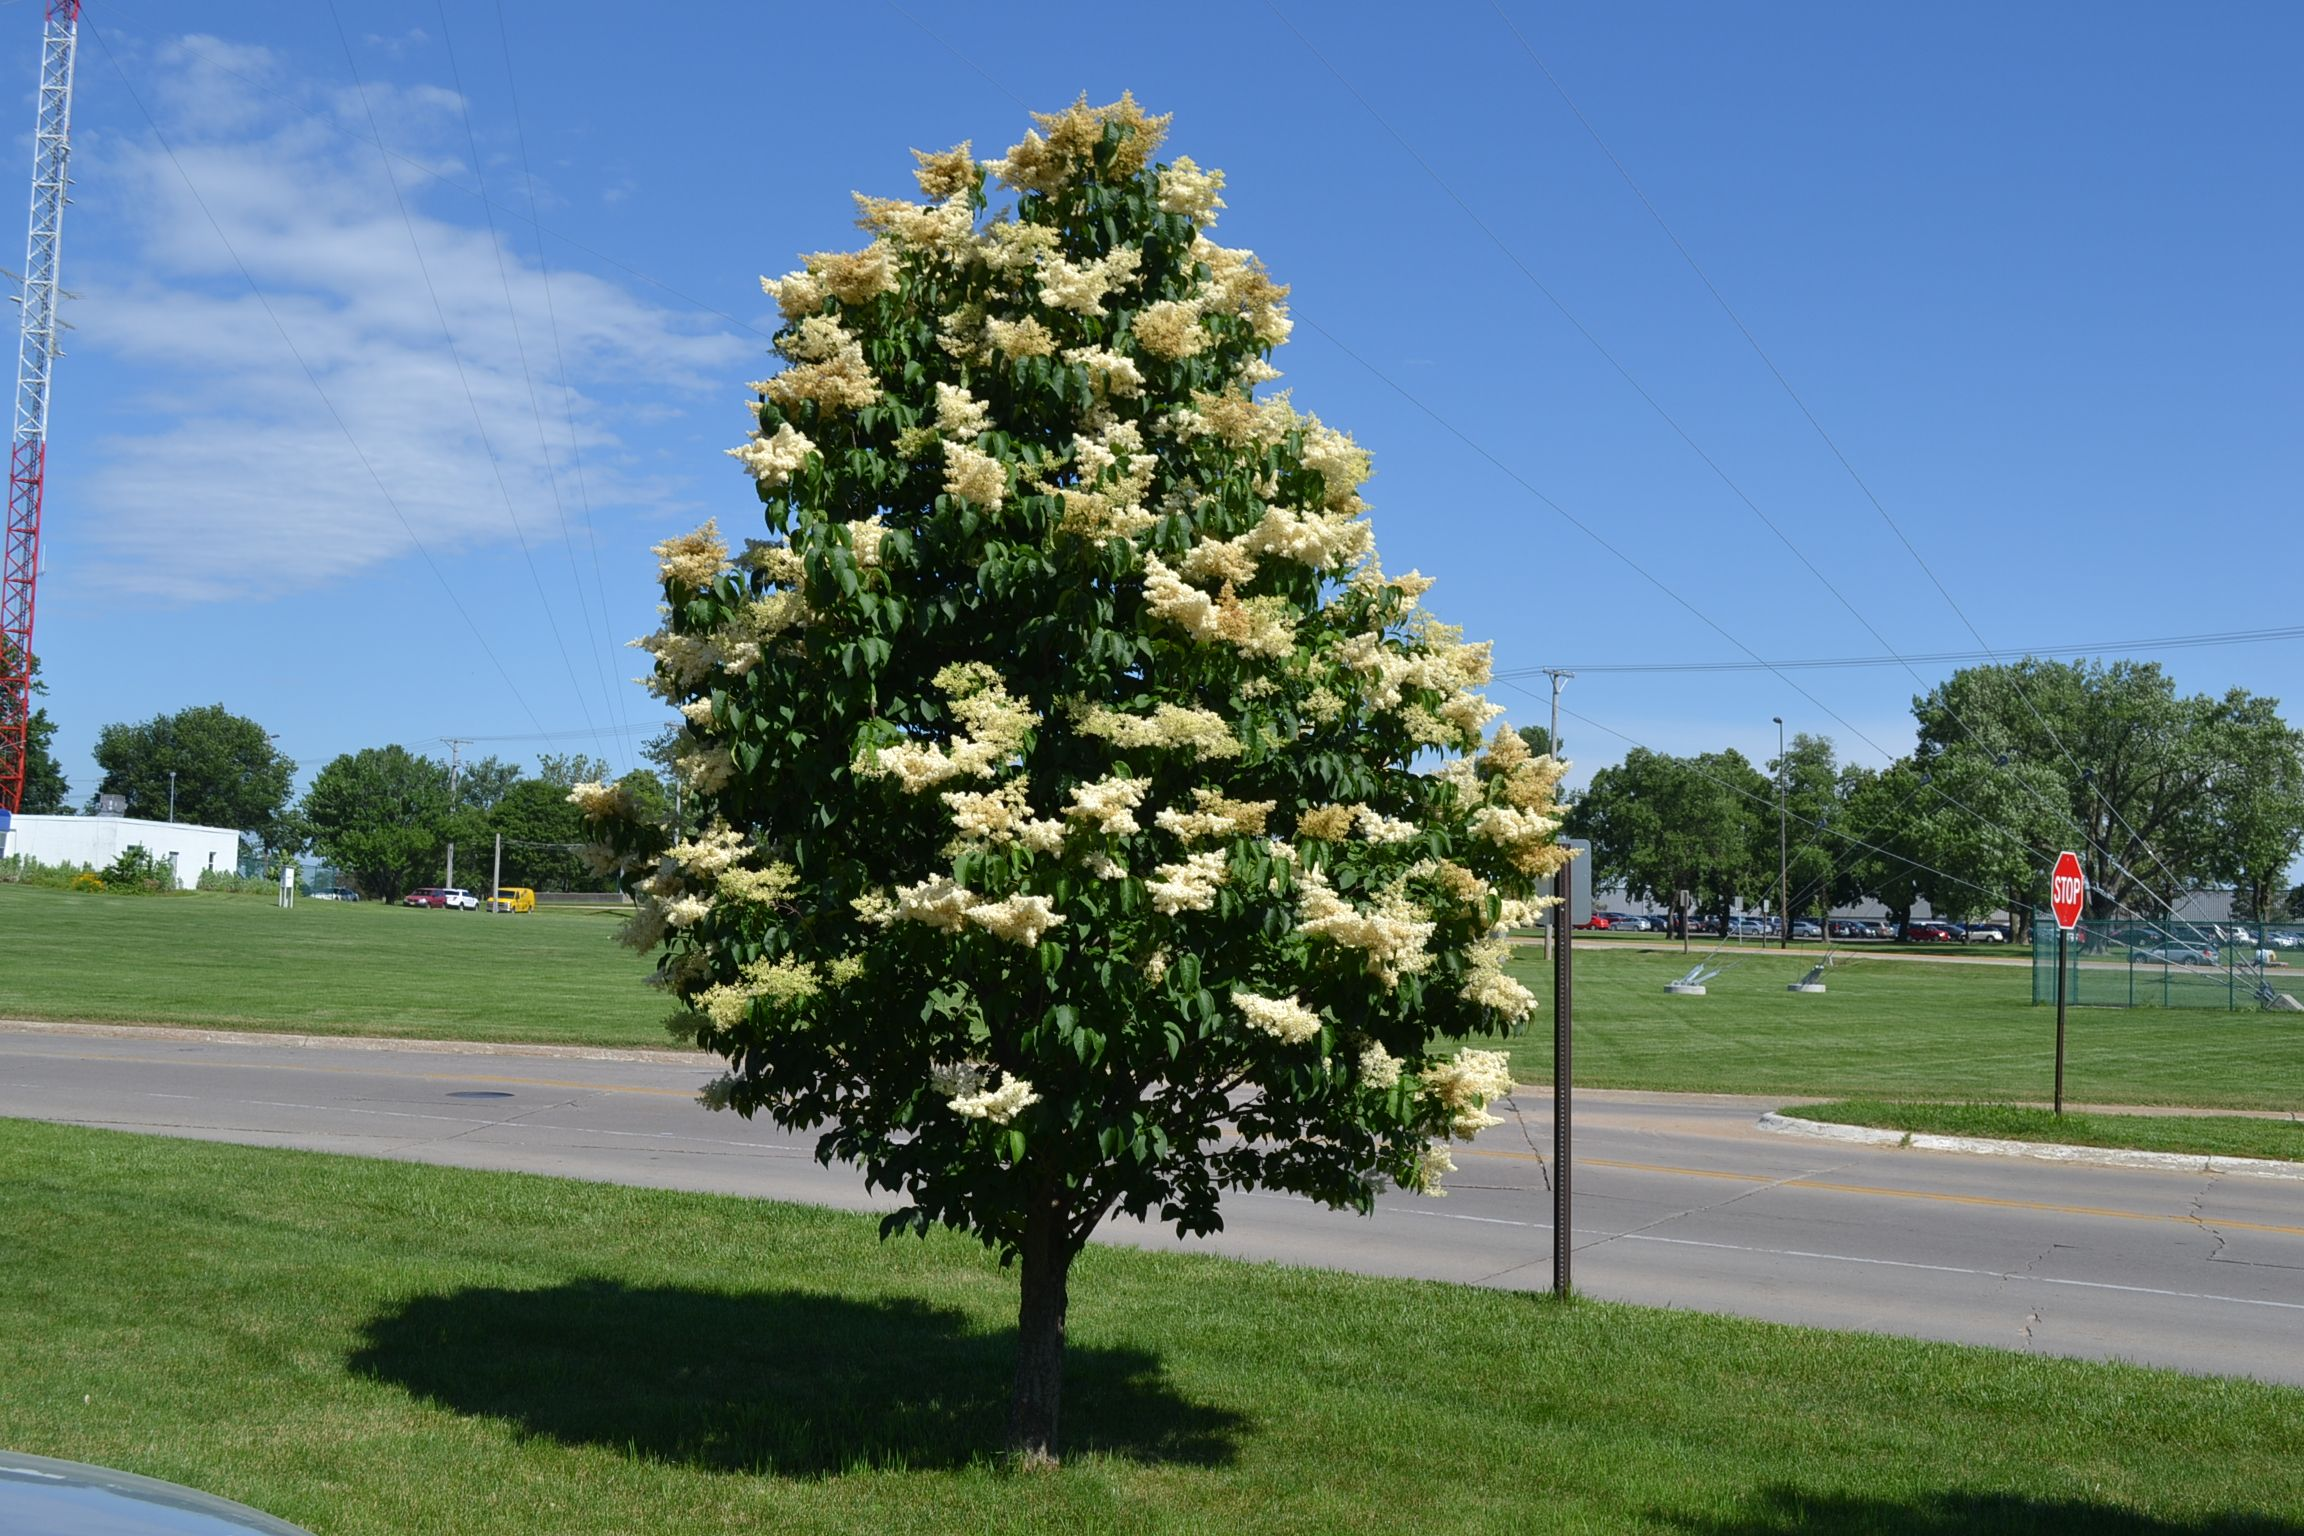 Ivory Silk Japanese Tree Lilac | Japanese tree, Lilacs and Japanese